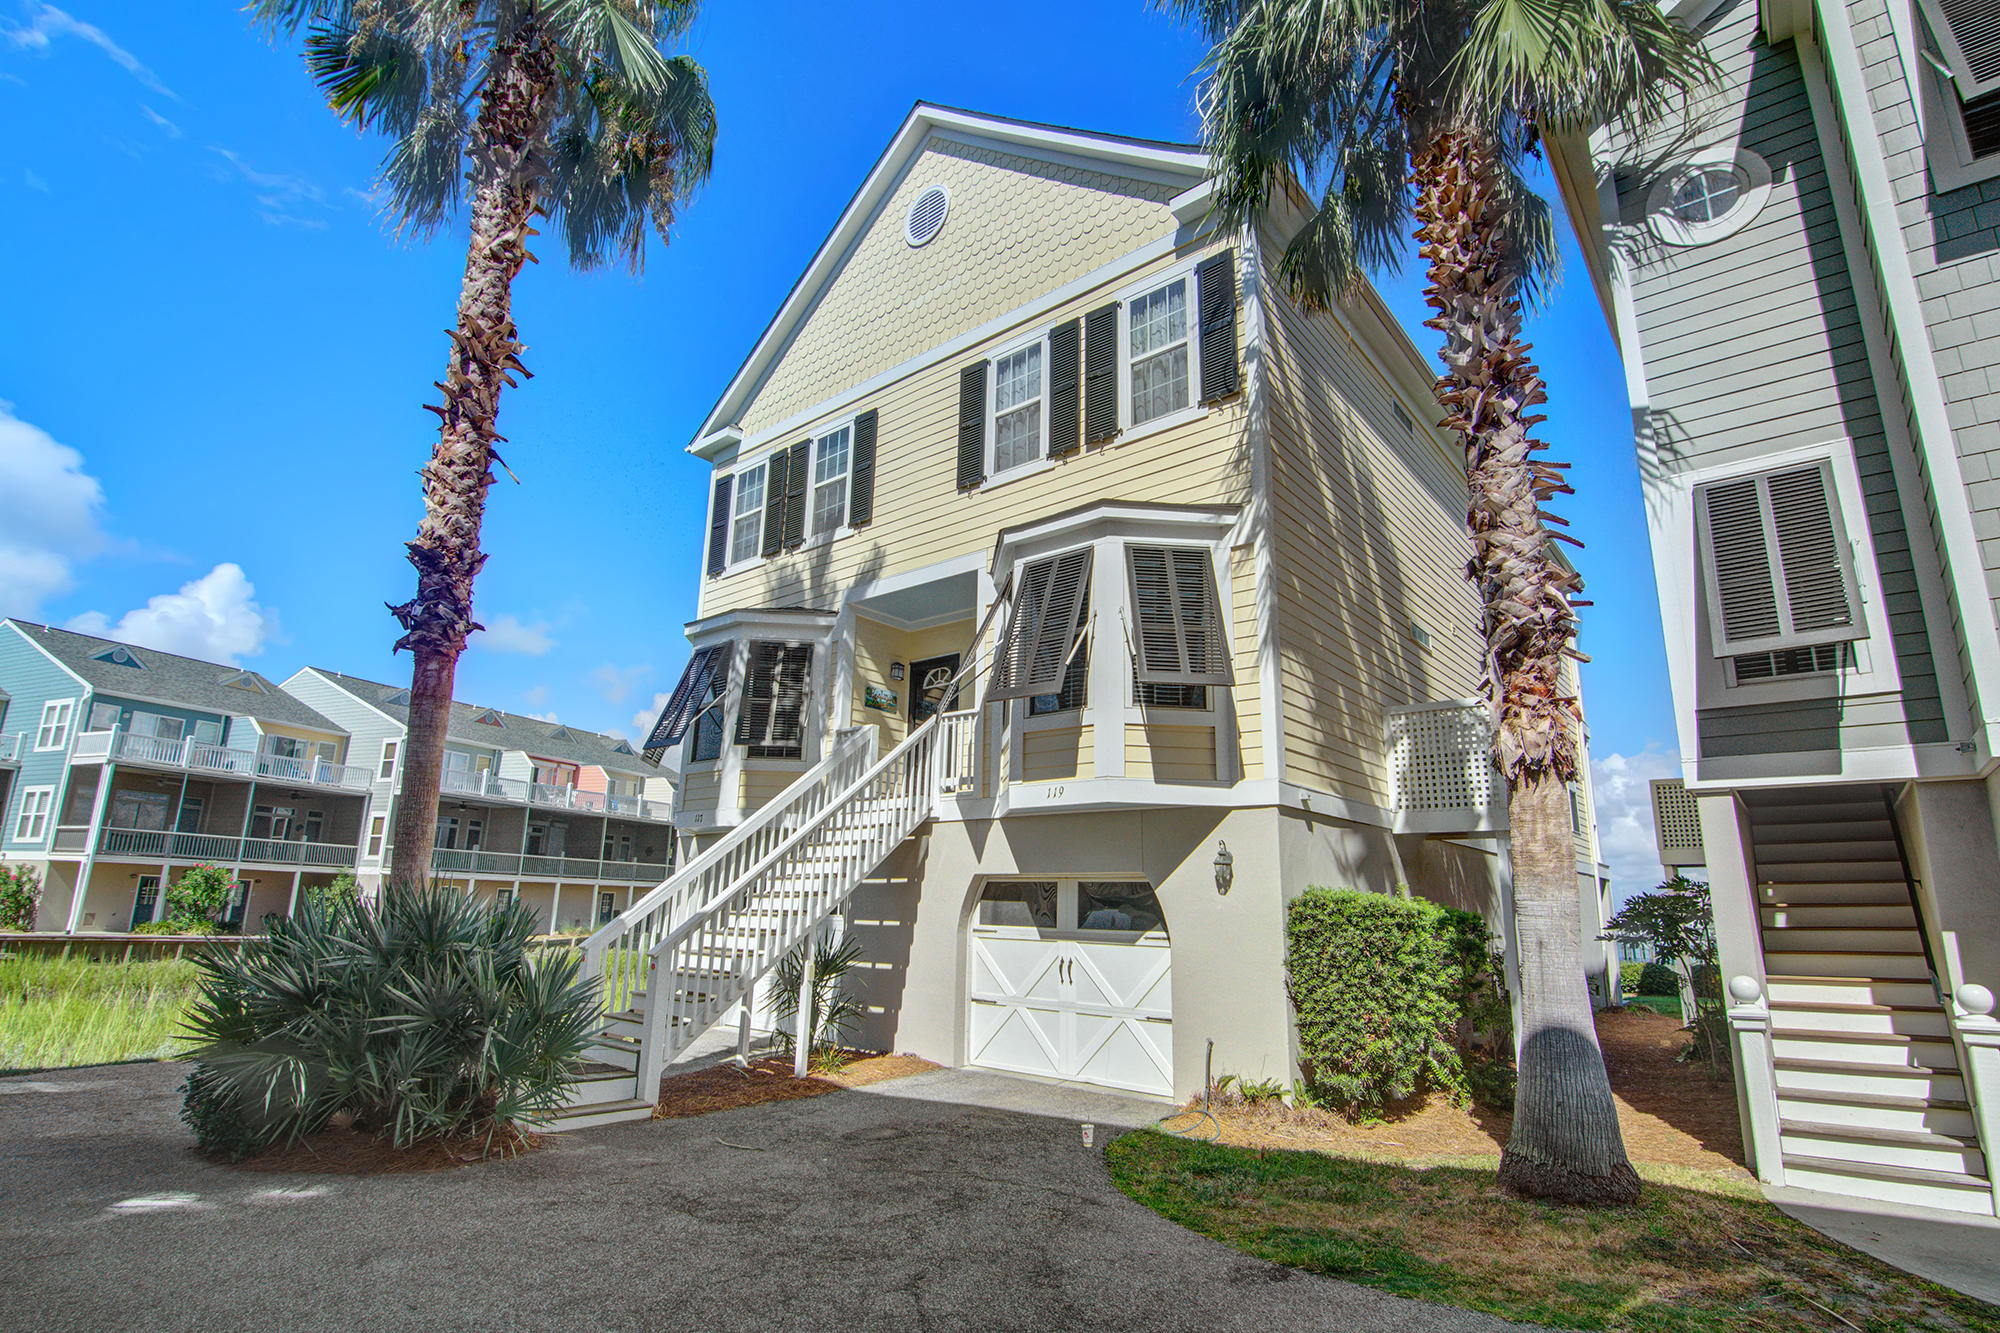 Waters Edge Homes For Sale - 119 2nd, Folly Beach, SC - 2